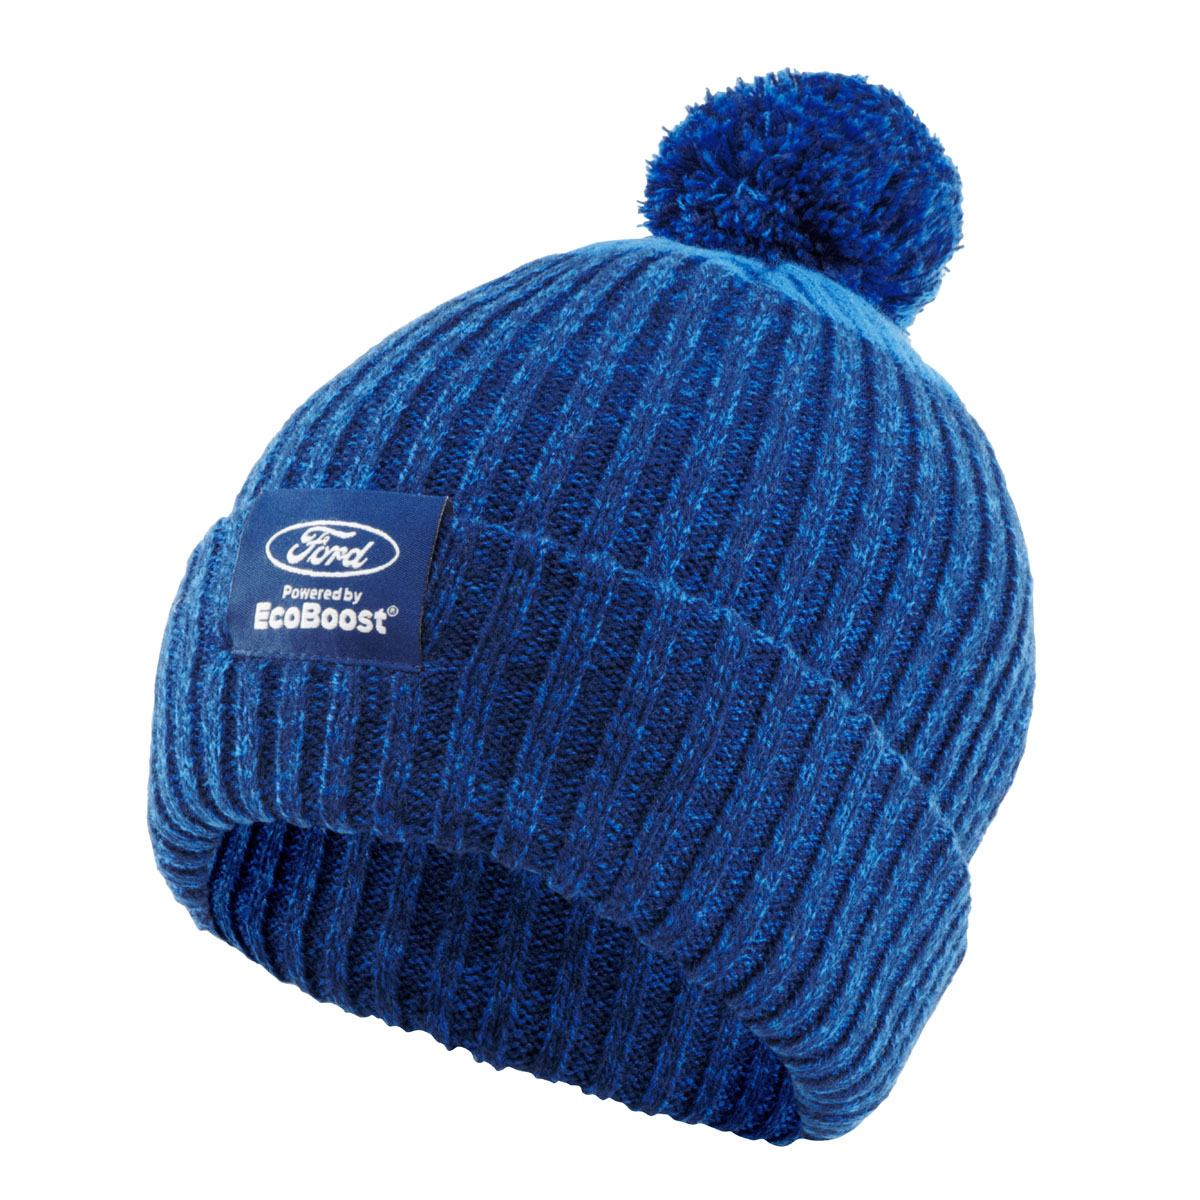 Ford Motorsport Team Beanie Wooly Hat Adult Wec Ford Gt Chip Ganassi Racing